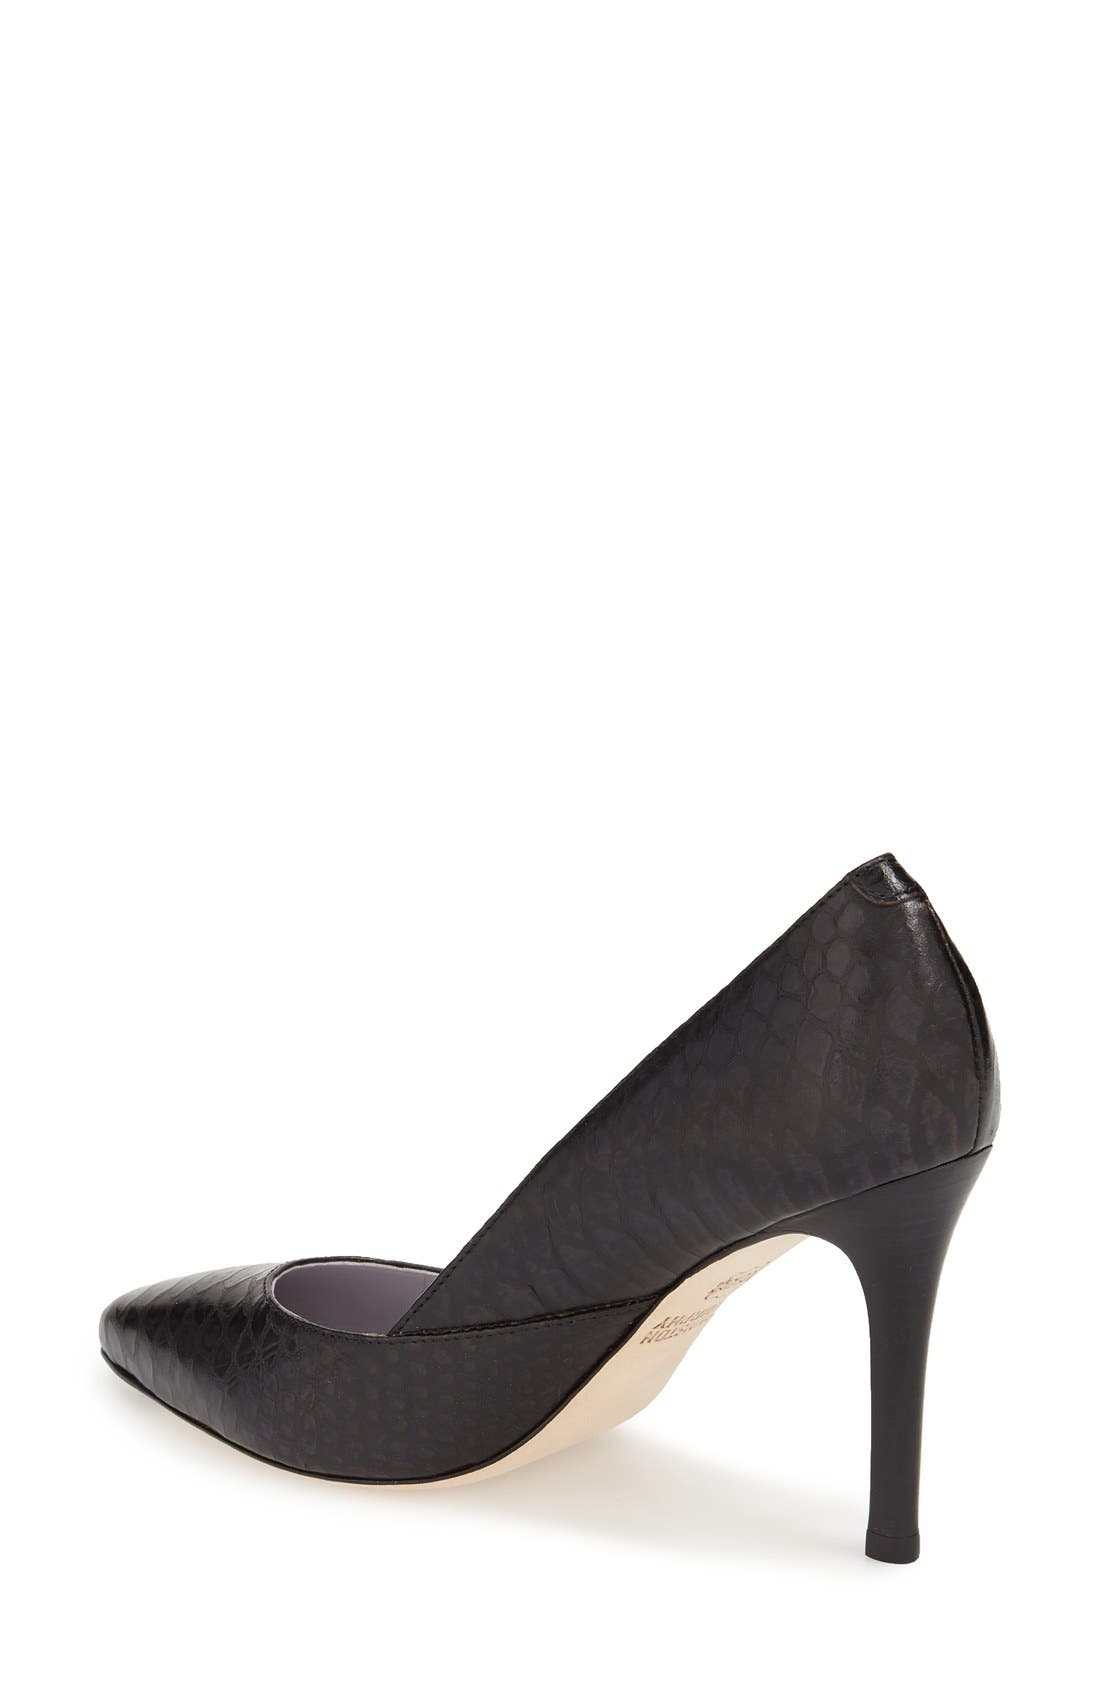 'Vanessa' Pointy Toe Leather Pump,                             Alternate thumbnail 14, color,